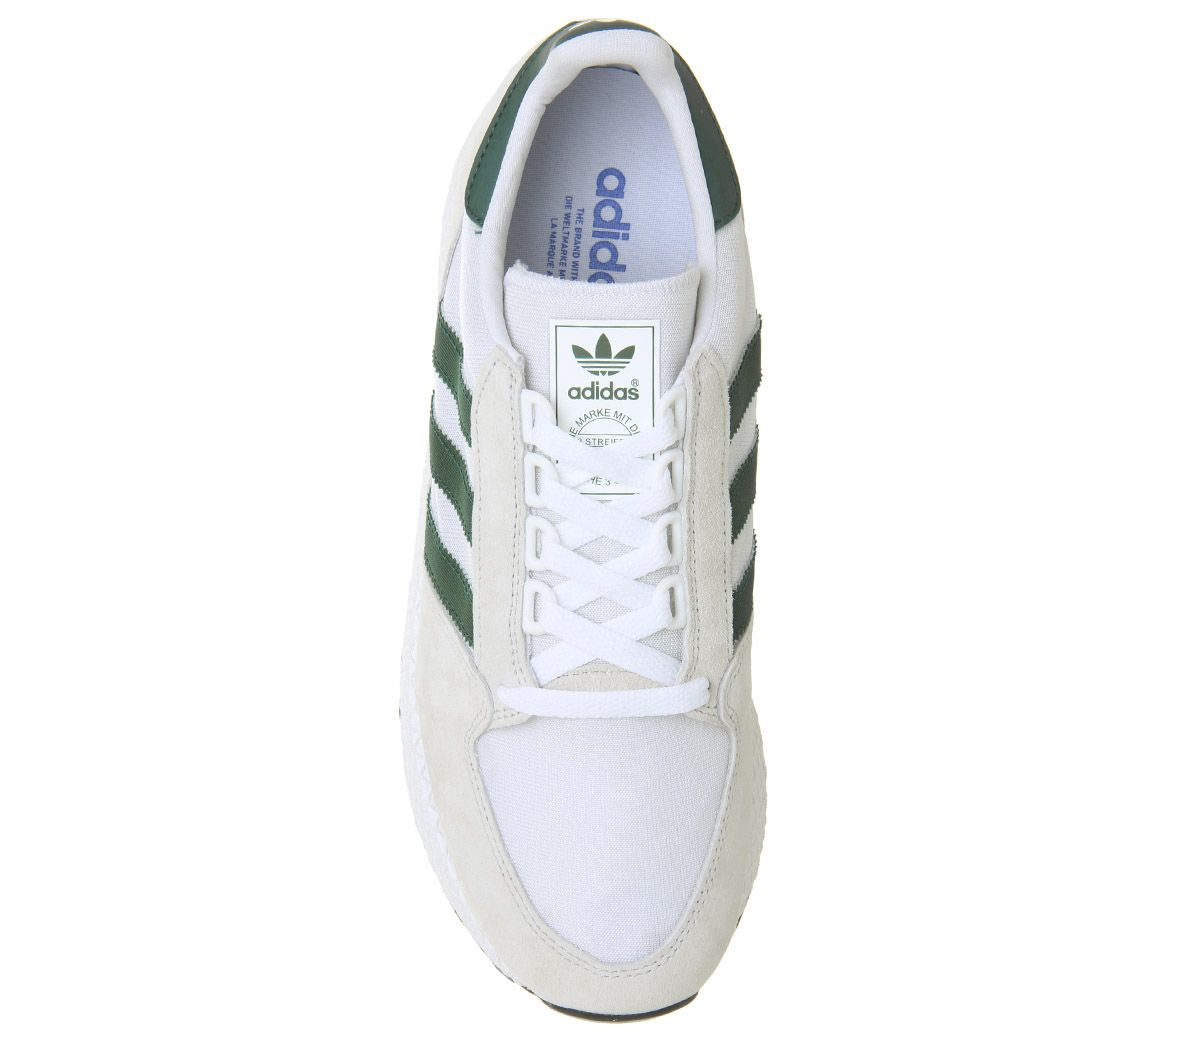 918a217c089 Forest Grove Trainers. Forest Grove Trainers. Double tap to zoom into the  image. adidas